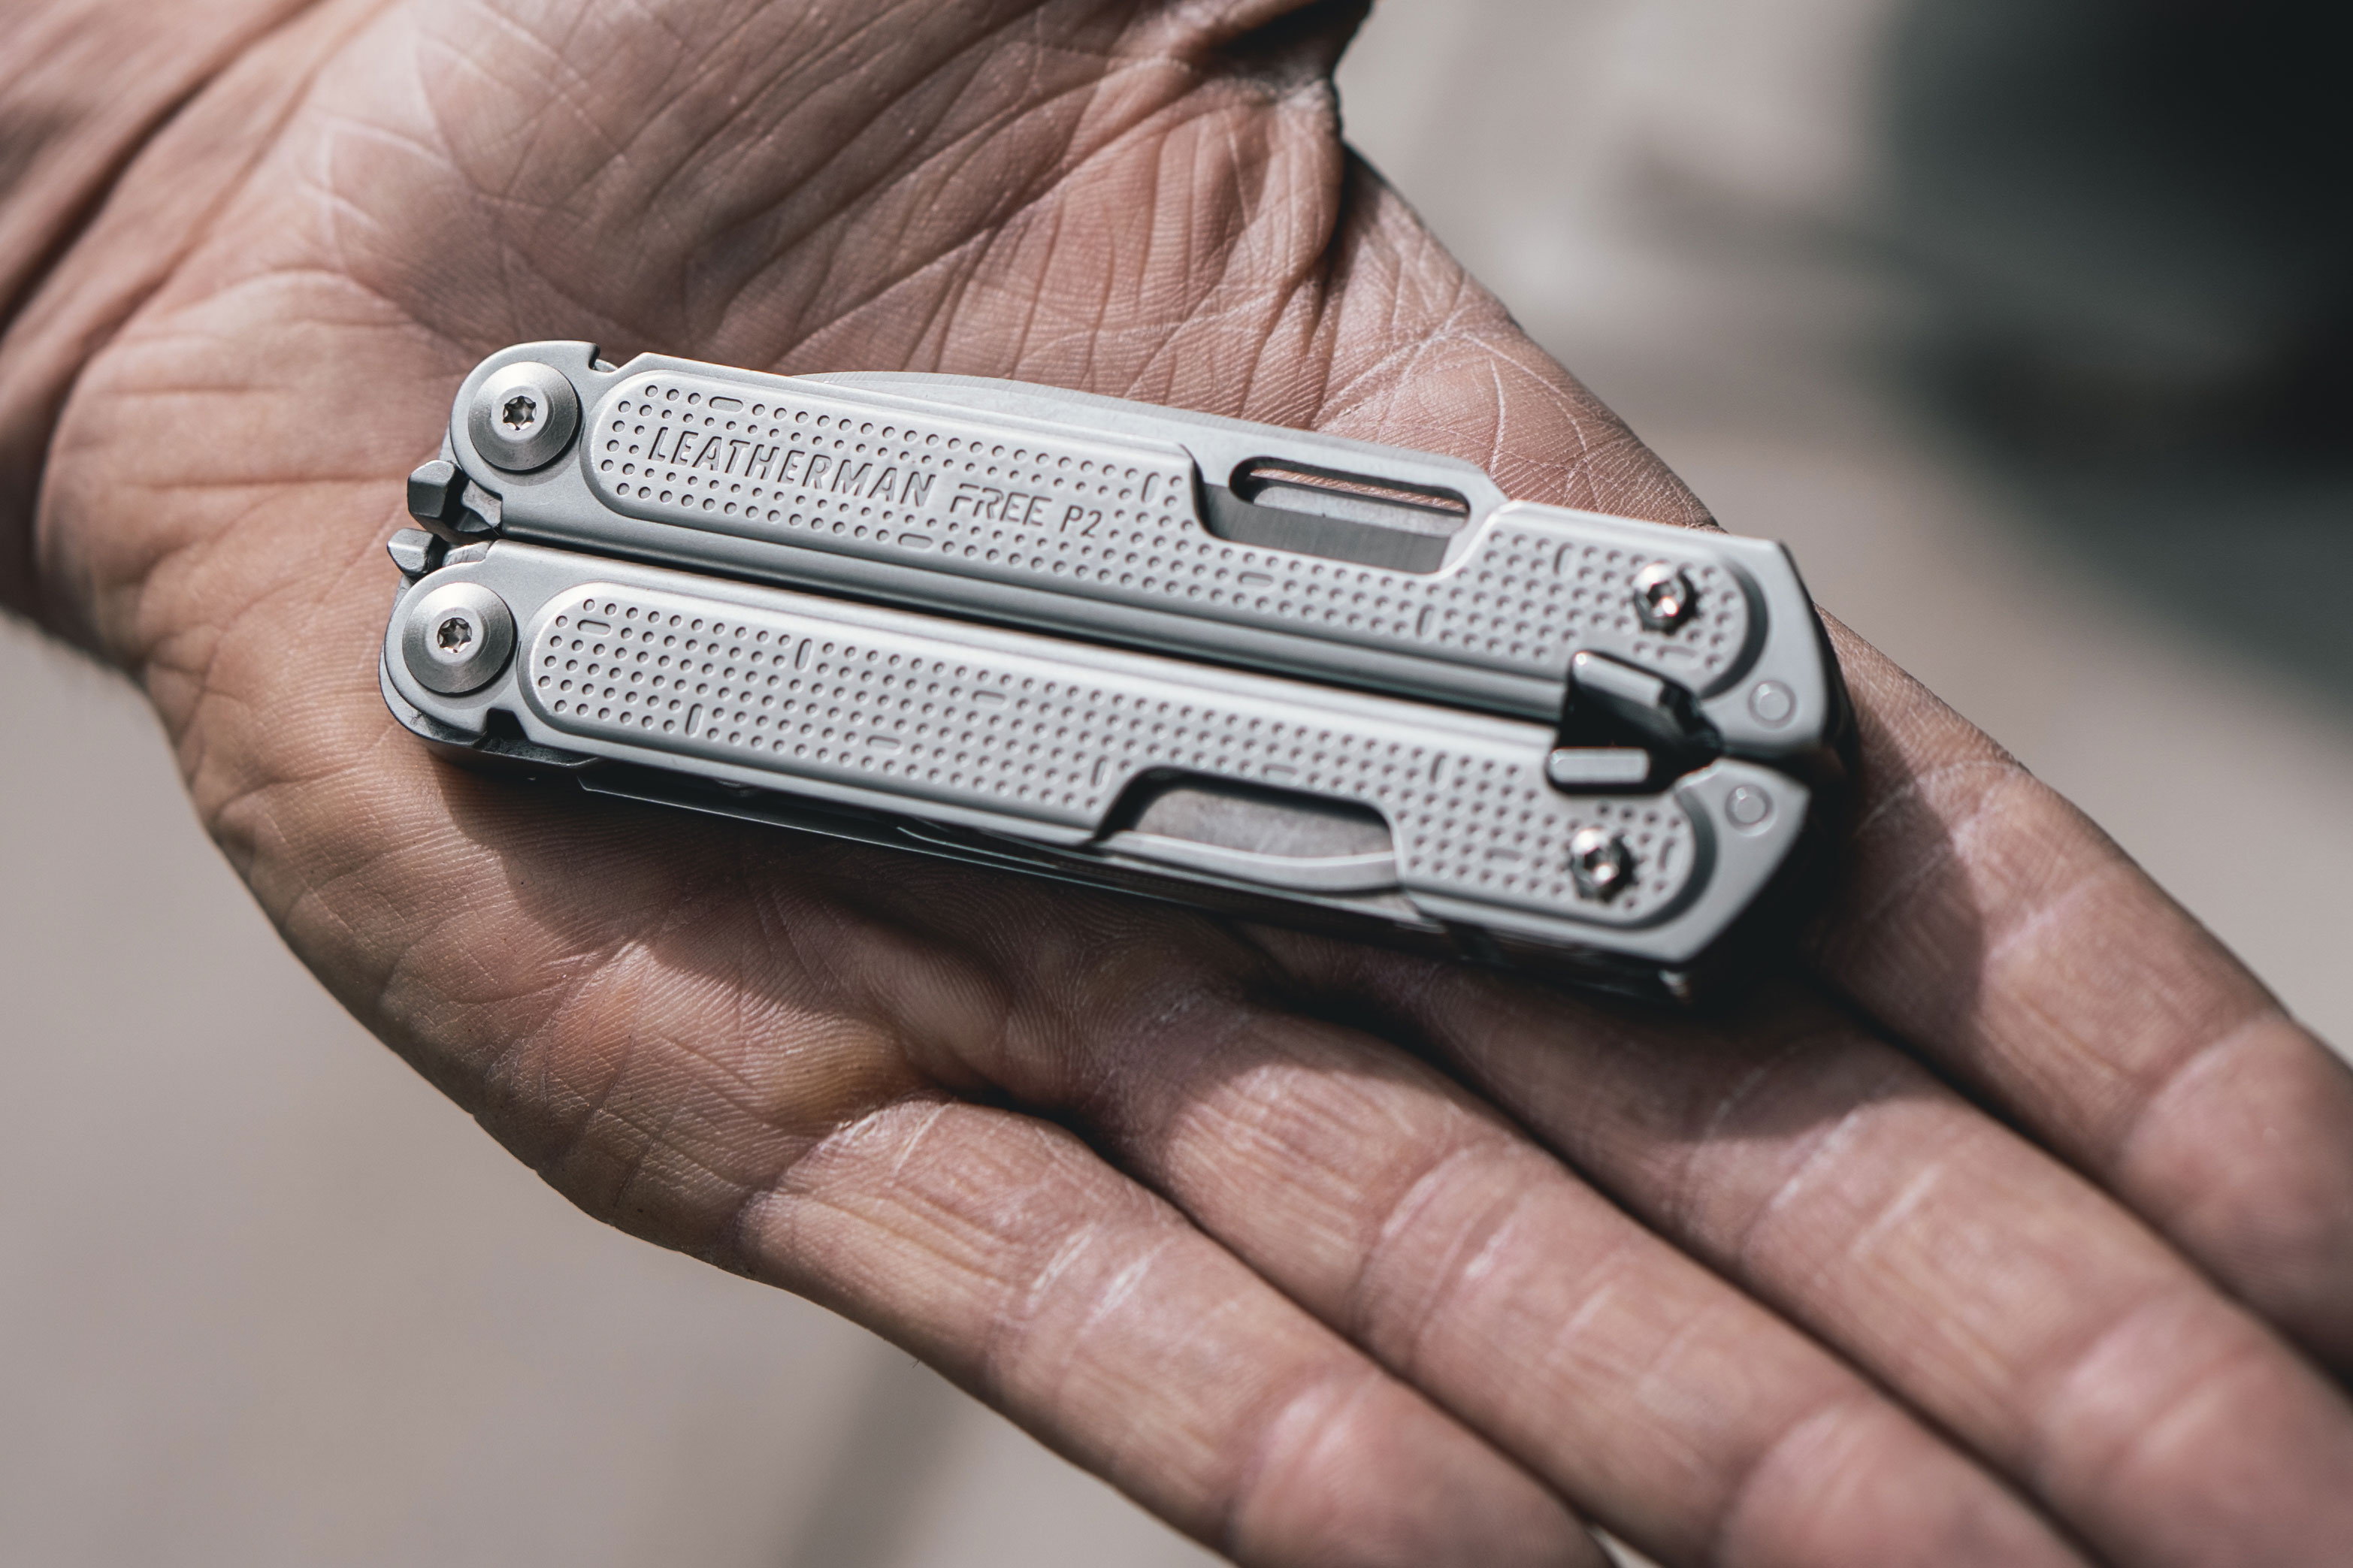 Leatherman Free closed in hand